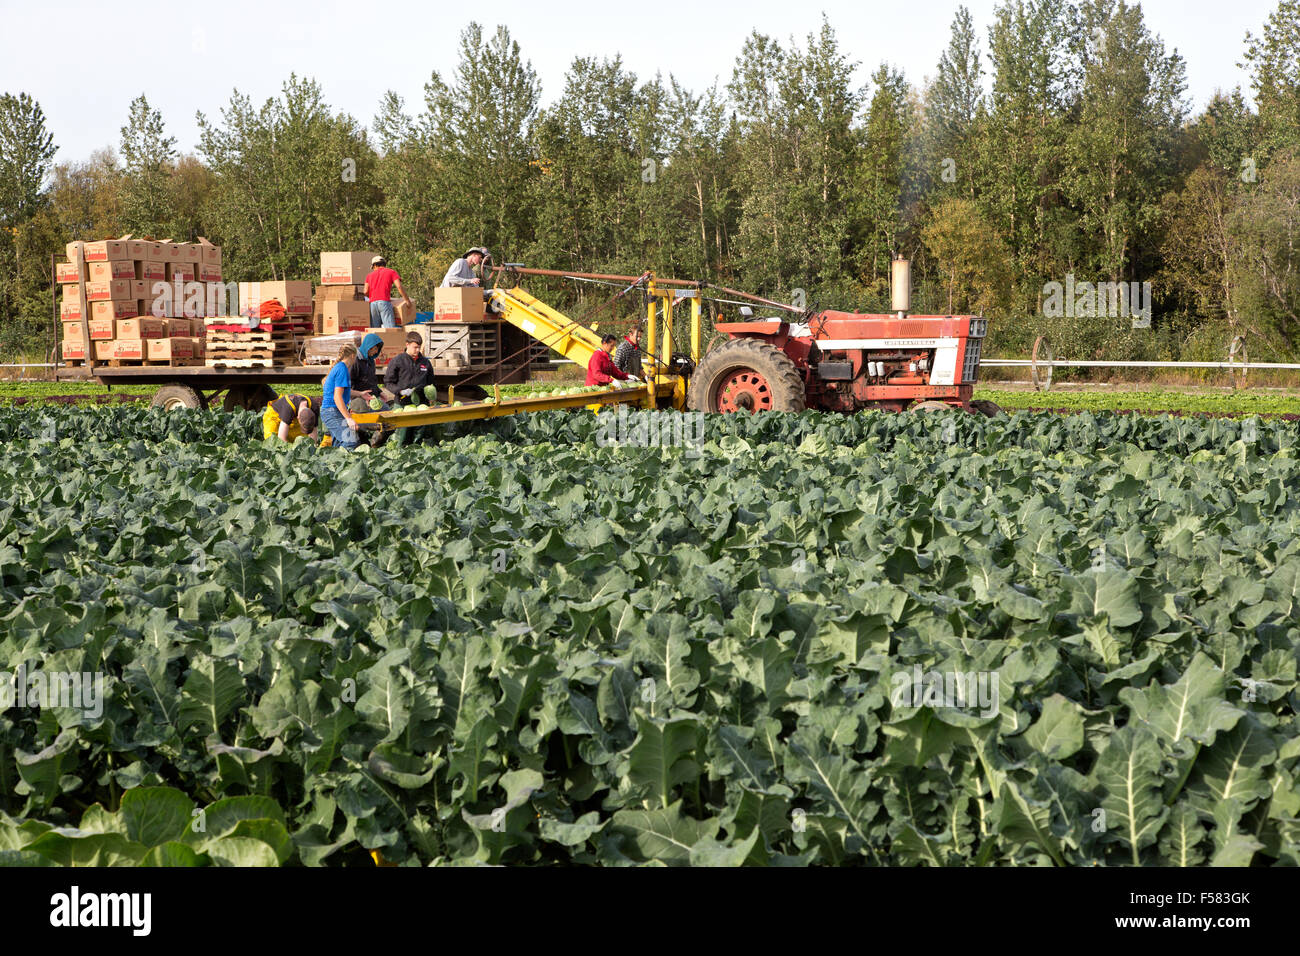 Farm workers harvesting Cabbage 'Brassica oleracea' . - Stock Image